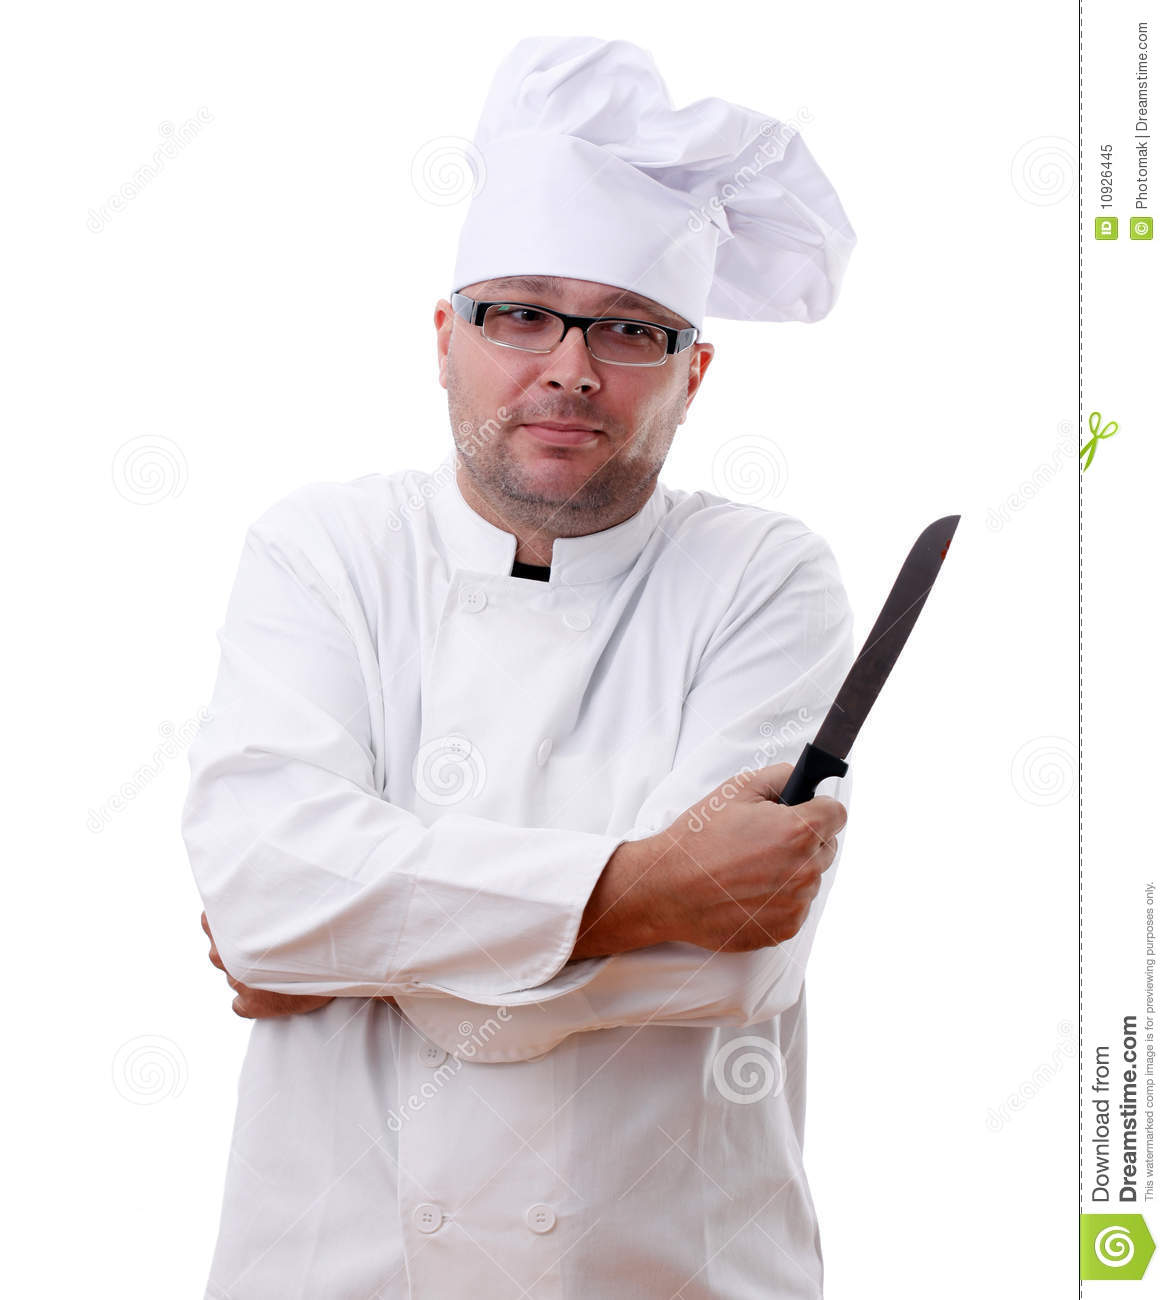 middle aged chef holding a kitchen knife royalty free stock photo image 10926445. Black Bedroom Furniture Sets. Home Design Ideas